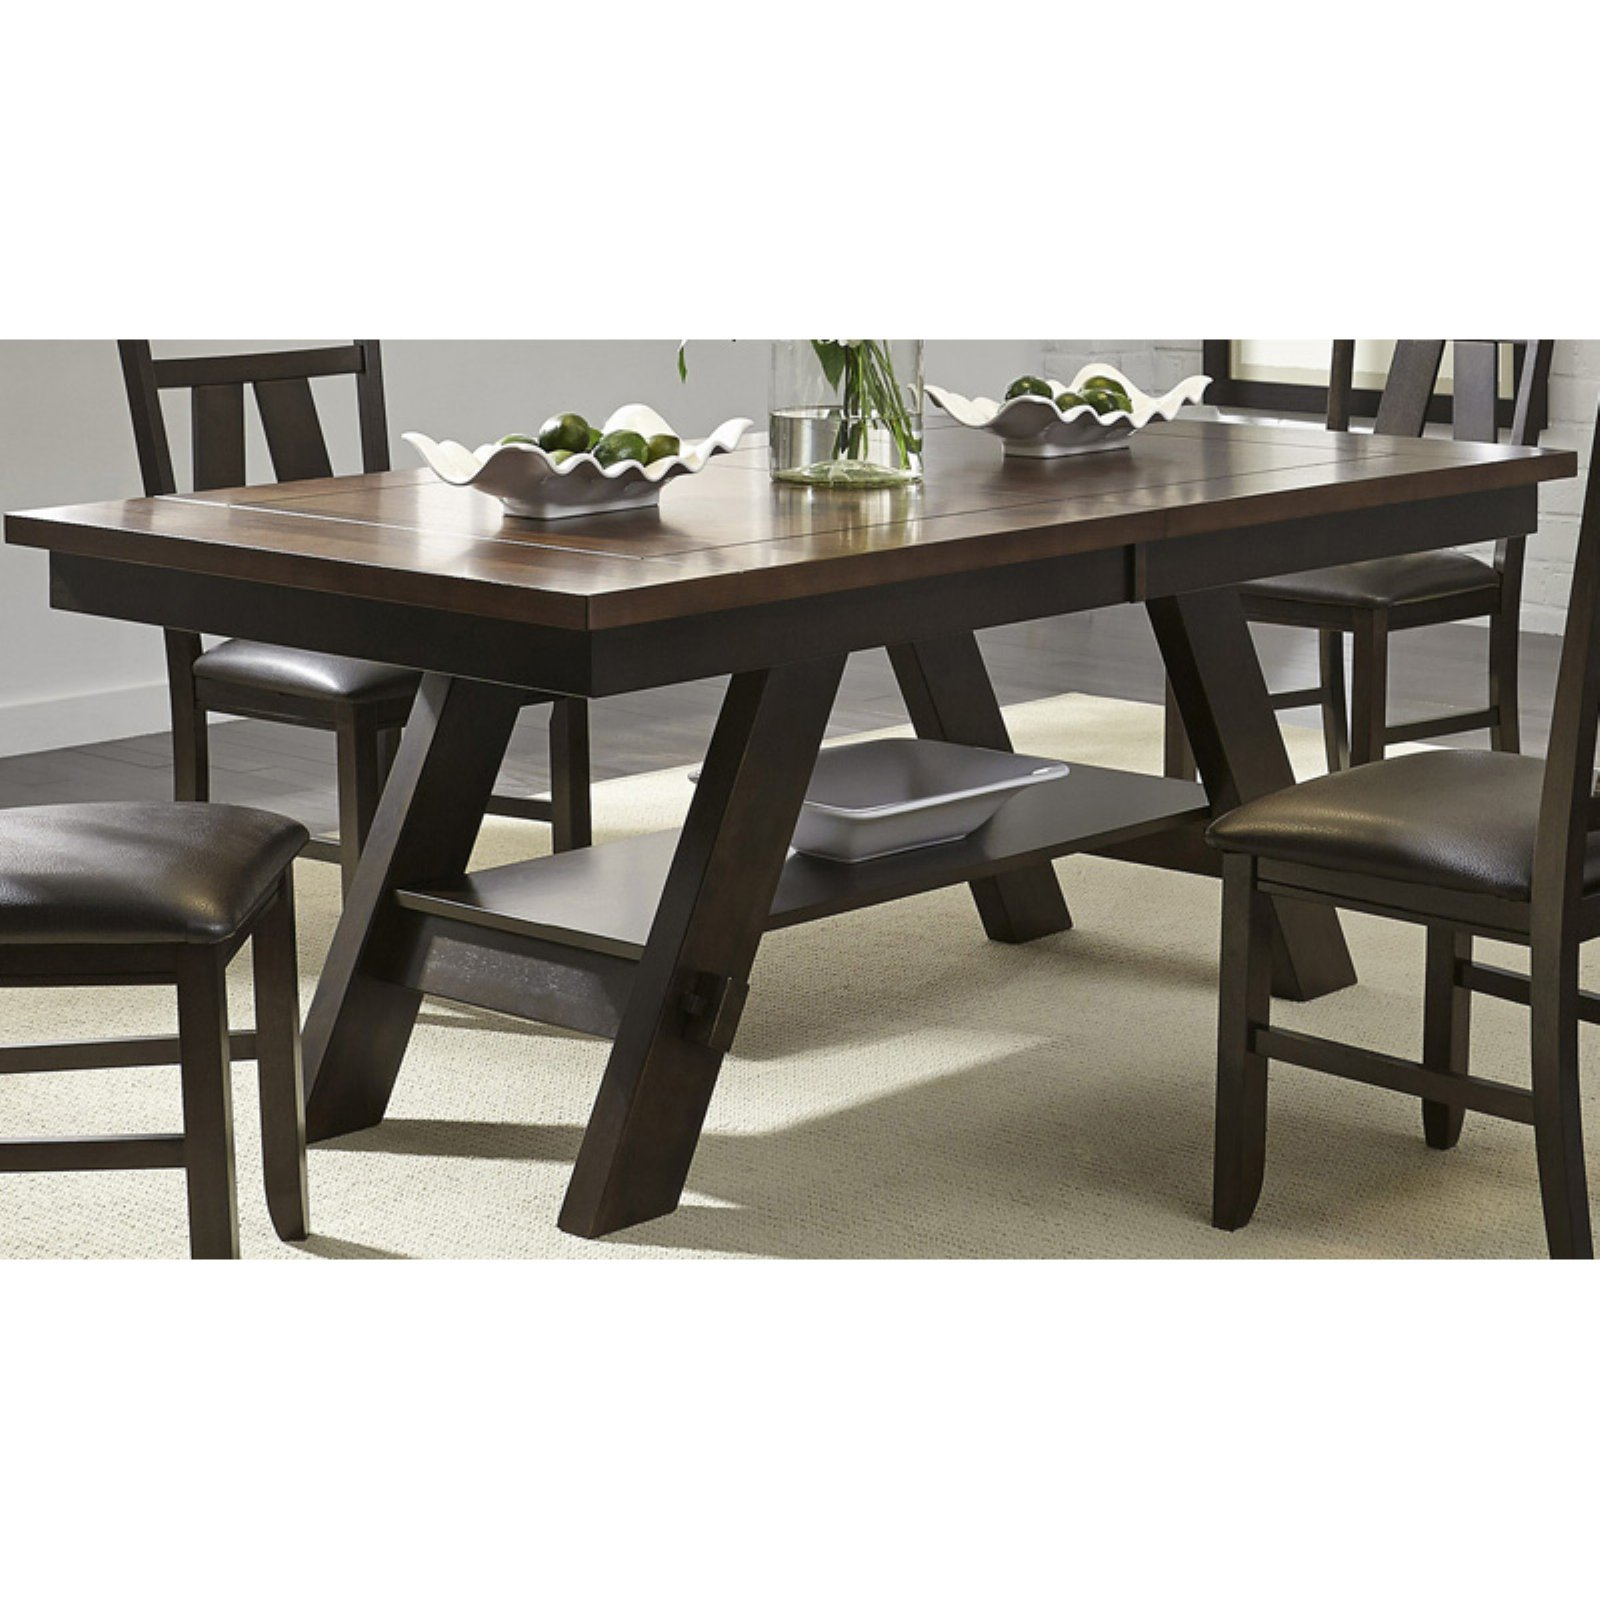 Liberty Furniture Industries Lawson Extension Dining Table Regarding Newest James Adjustables Height Extending Dining Tables (Image 14 of 25)